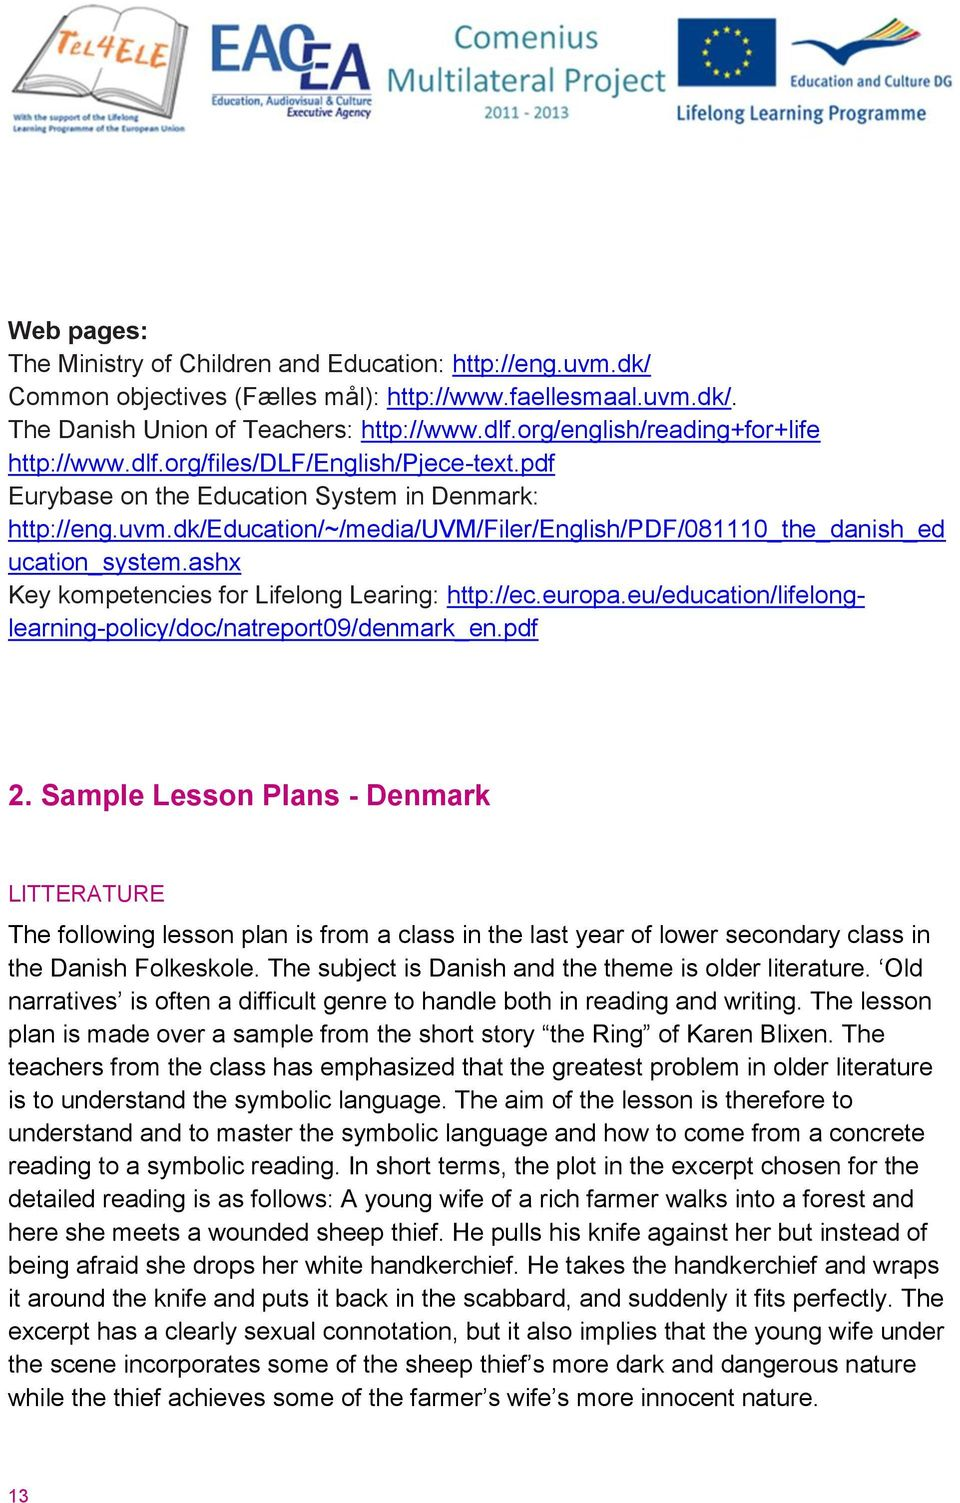 dk/education/~/media/uvm/filer/english/pdf/081110_the_danish_ed ucation_system.ashx Key kompetencies for Lifelong Learing: http://ec.europa.